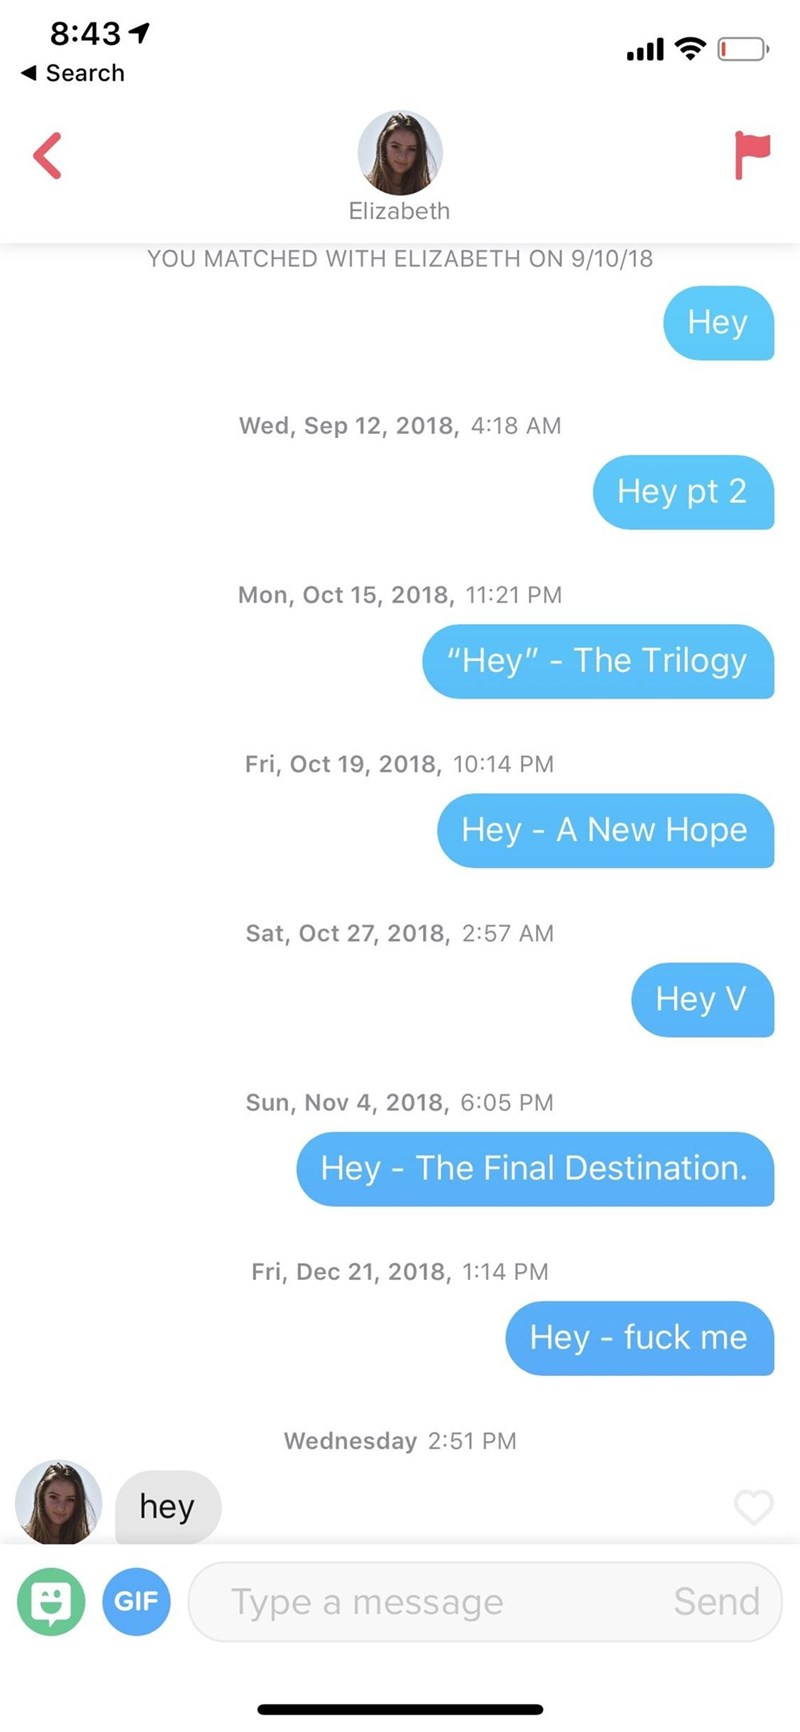 "Text - 8:43 Search Elizabeth YOU MATCHED WITH ELIZABETH ON 9/10/18 Неу Wed, Sep 12, 2018, 4:18 AM Hey pt 2 Mon, Oct 15, 2018, 11:21 PM ""Hey"" - The Trilogy Fri, Oct 19, 2018, 10:14 PM Hey -A New Hope Sat, Oct 27, 2018, 2:57 AM Неy V Sun, Nov 4, 2018, 6:05 PM Hey - The Final Destination. Fri, Dec 21, 2018, 1:14 PM Hey -fuck me Wednesday 2:51 PM hey Send Type a message GIF"